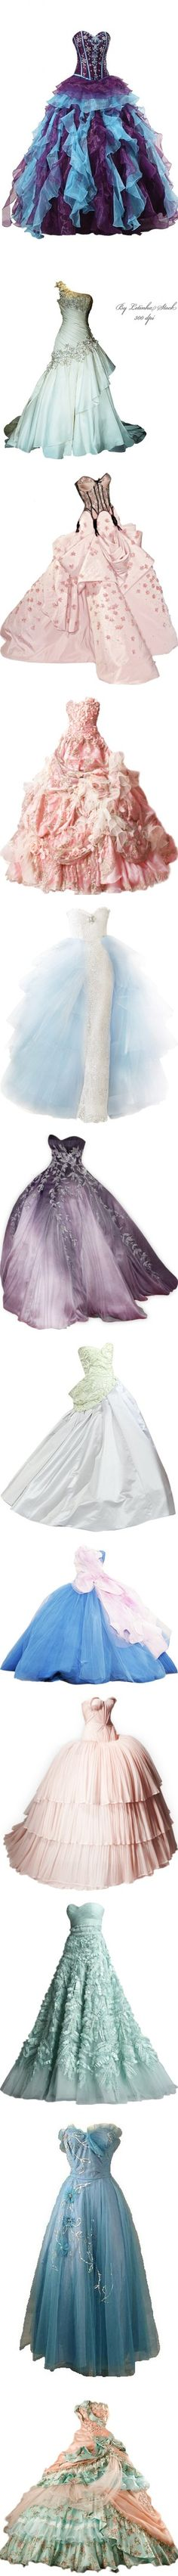 *-* Gorgeous Gowns *-* by blackseagirl on Polyvore featuring dresses, gowns, long dresses, vestidos, quinceanera dresses, prom gowns, long evening gowns, blue quinceanera dresses, long evening dresses and pink gown